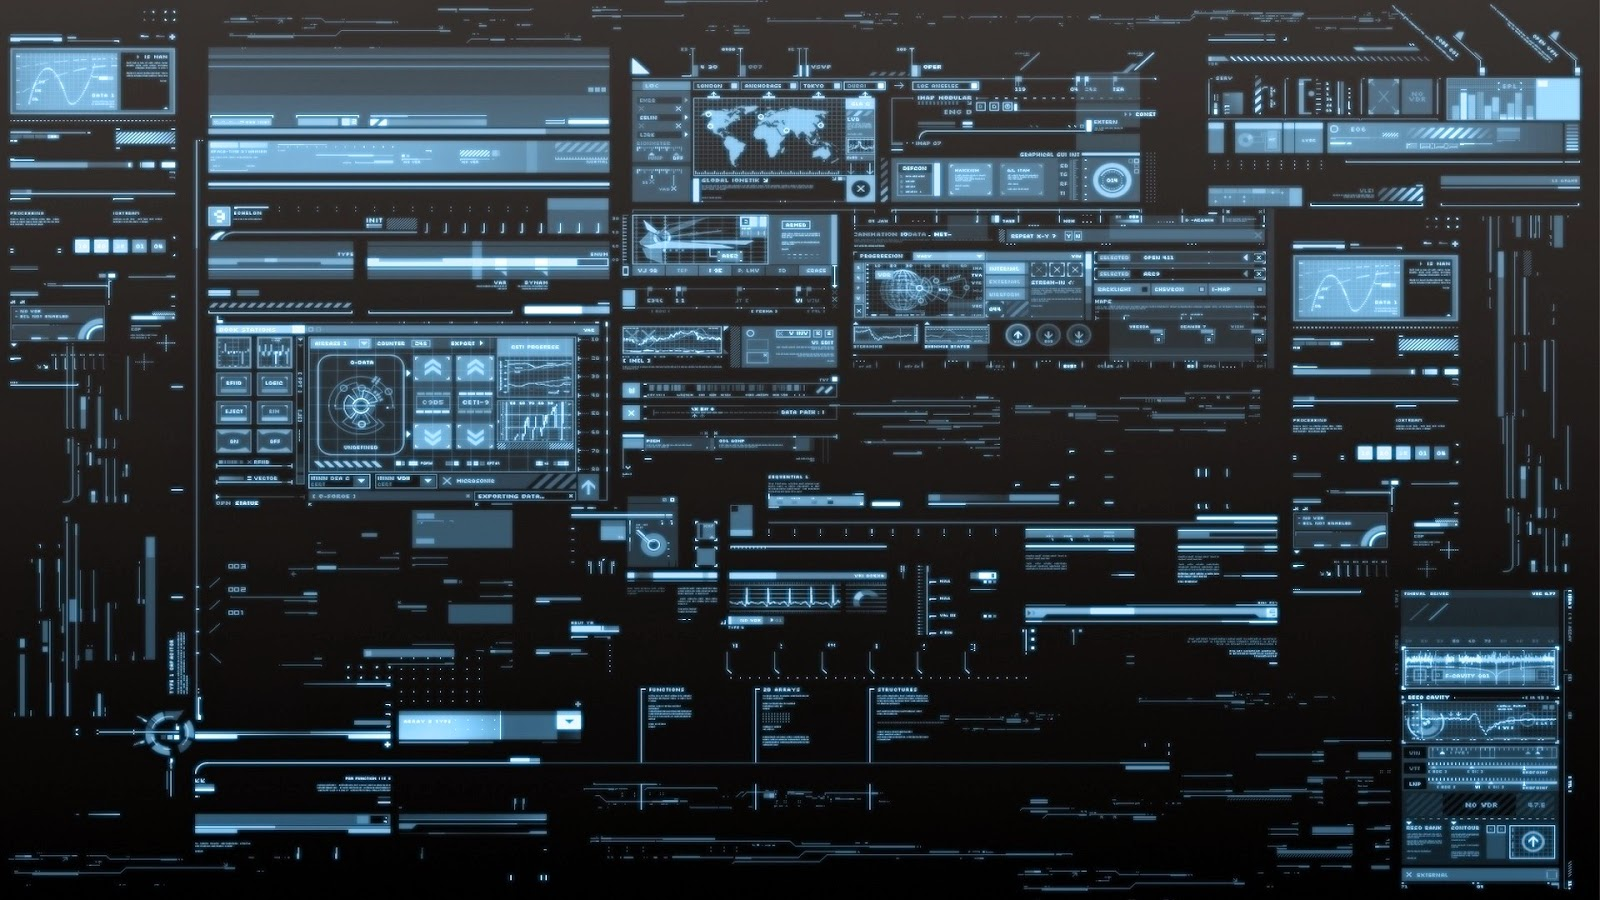 WeezyBuzz: Cool Tech Wallpapers